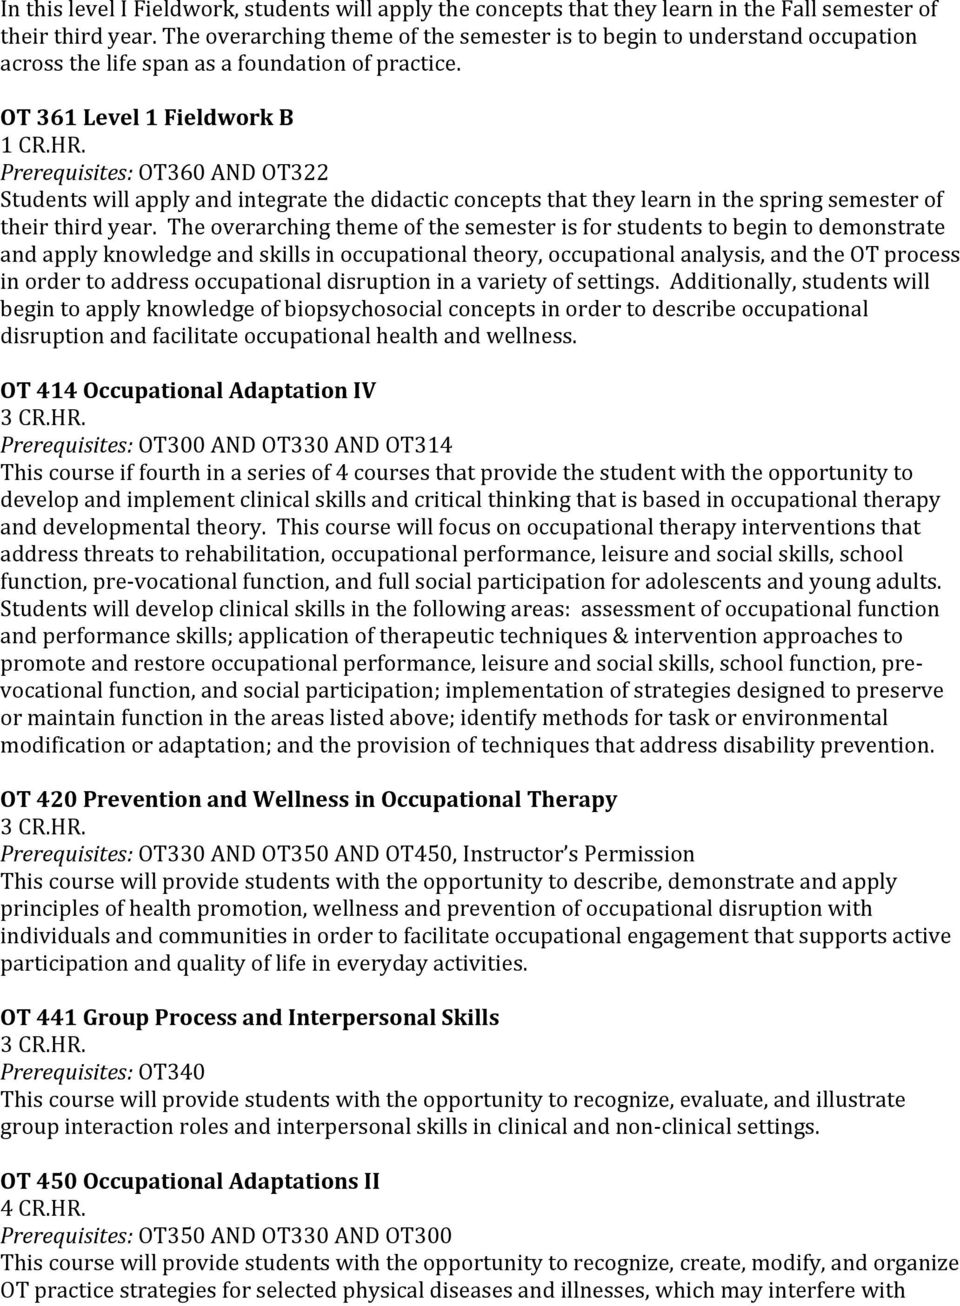 OT 361 Level 1 Fieldwork B Prerequisites: OT360 AND OT322 Students will apply and integrate the didactic concepts that they learn in the spring semester of their third year.